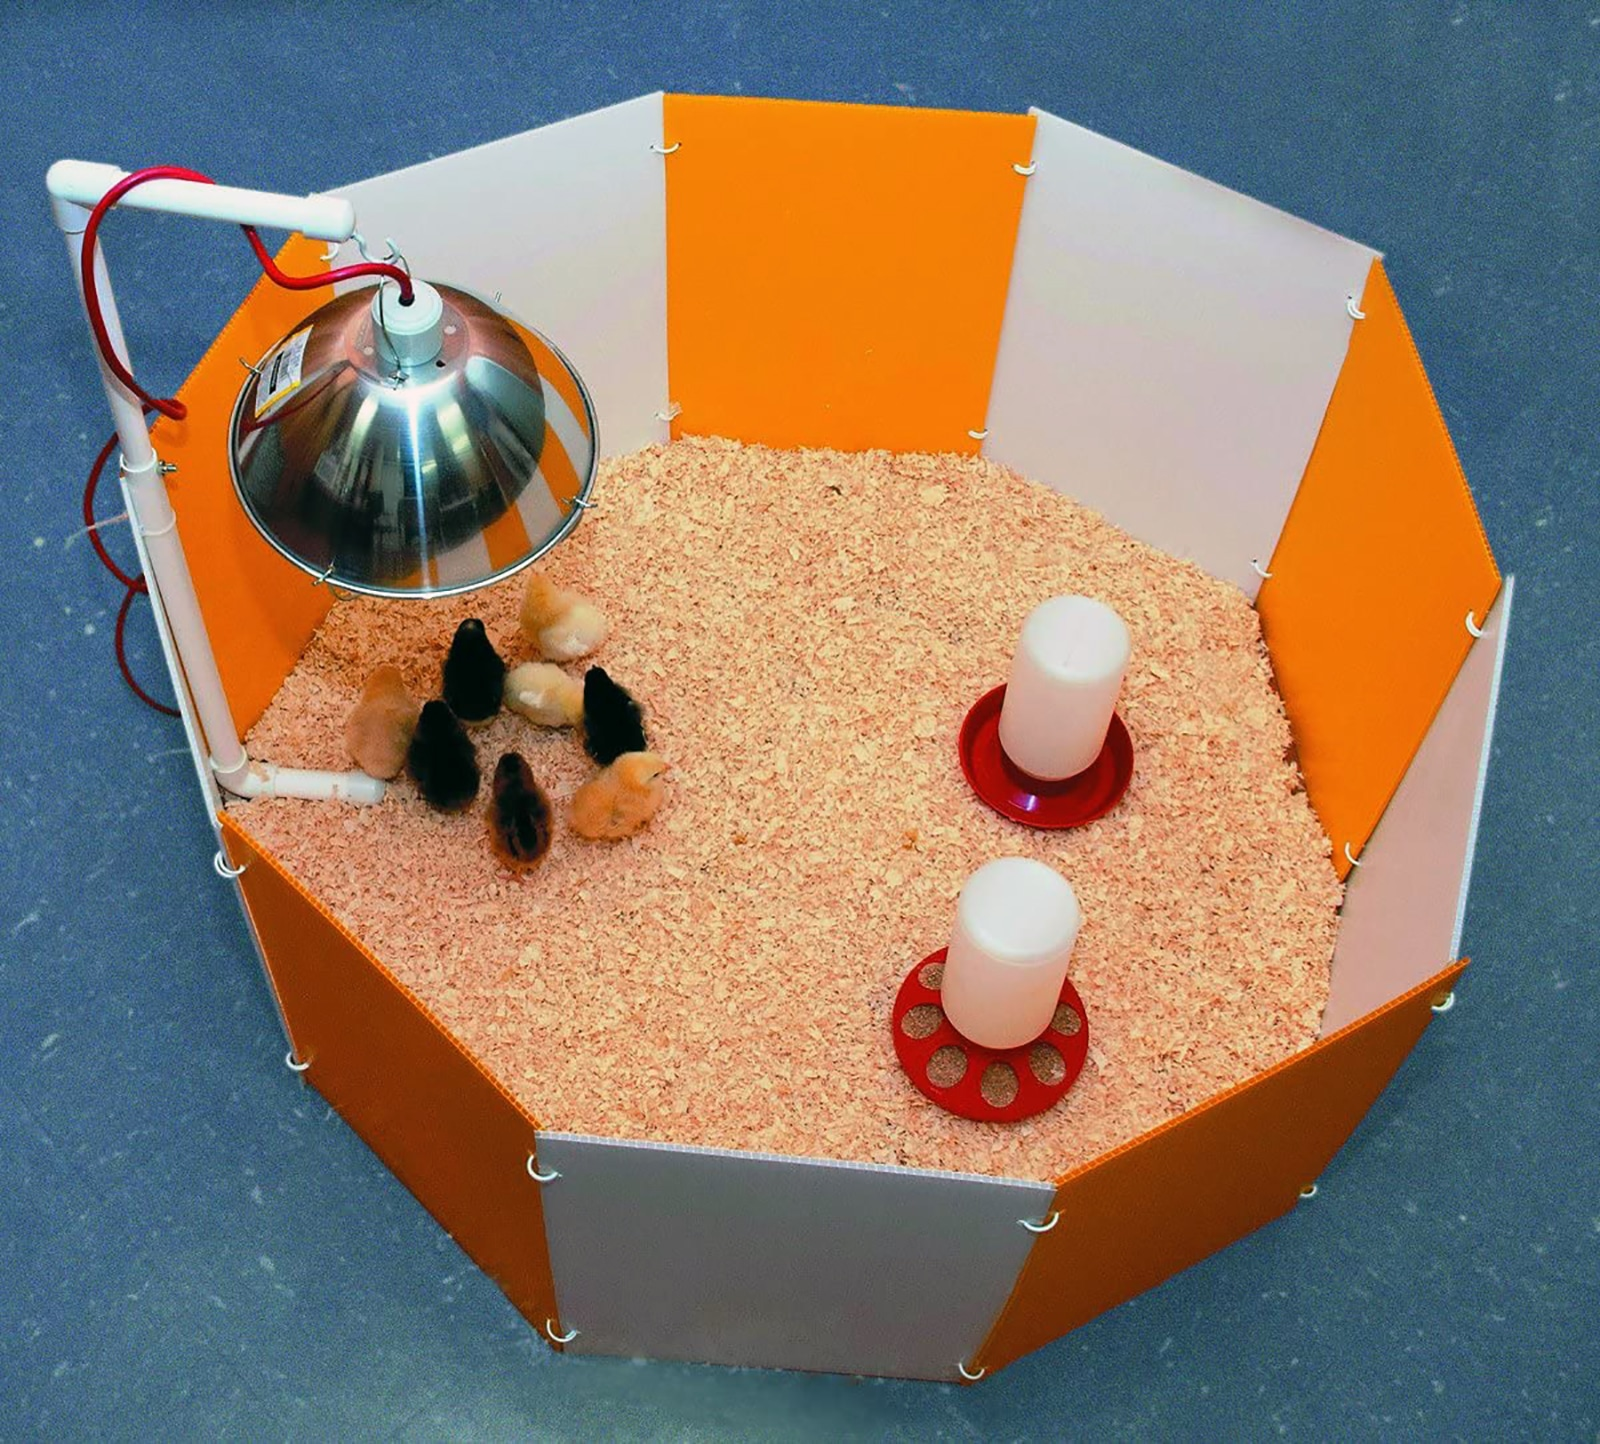 Baby Chick Starter Home Kit review